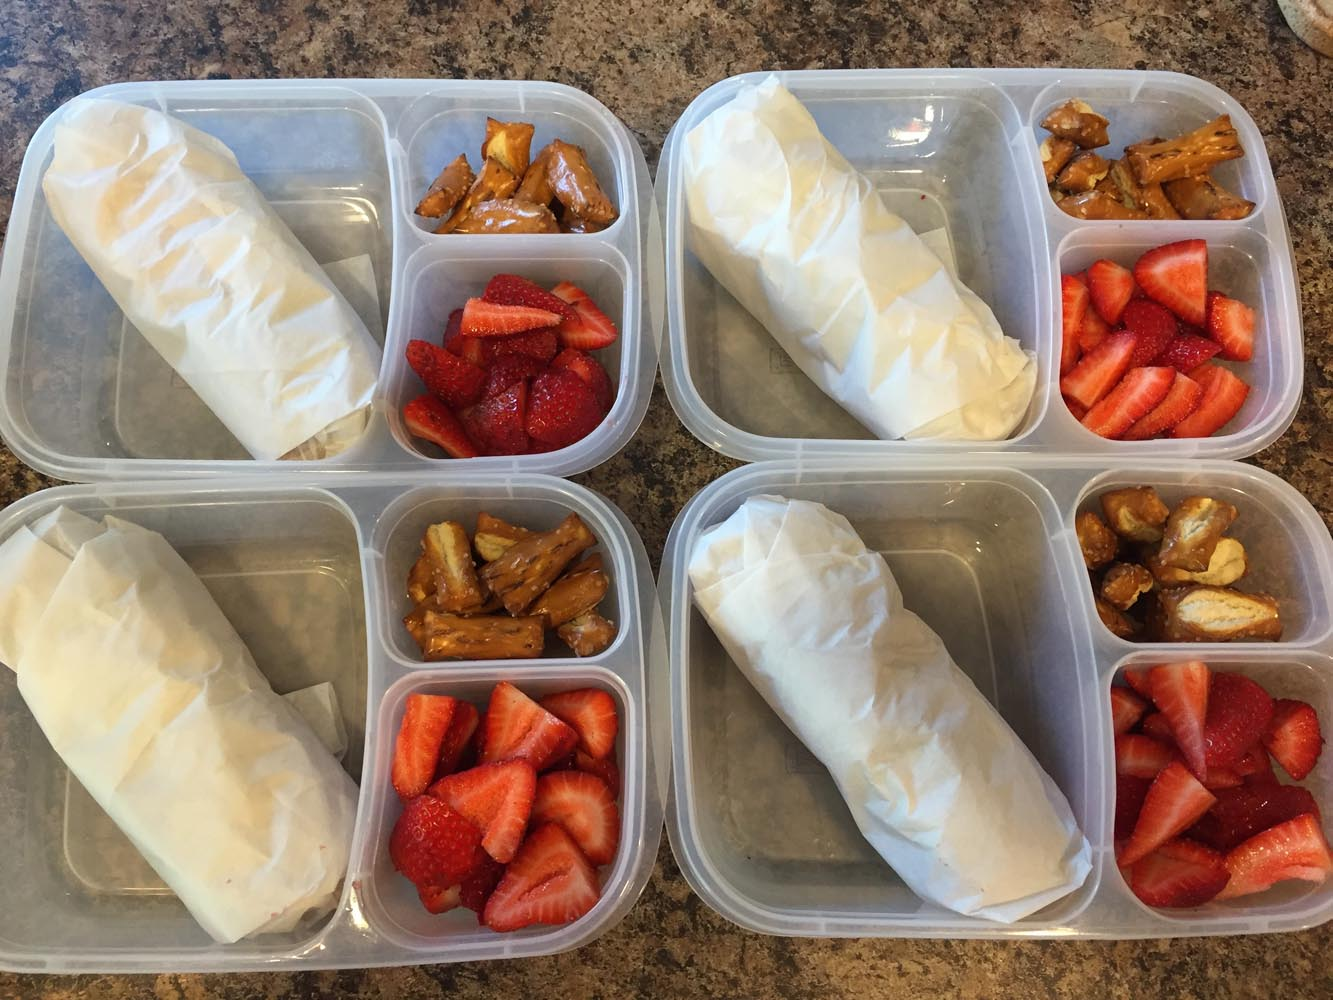 Turkey Wraps, Strawberries, Pretzels